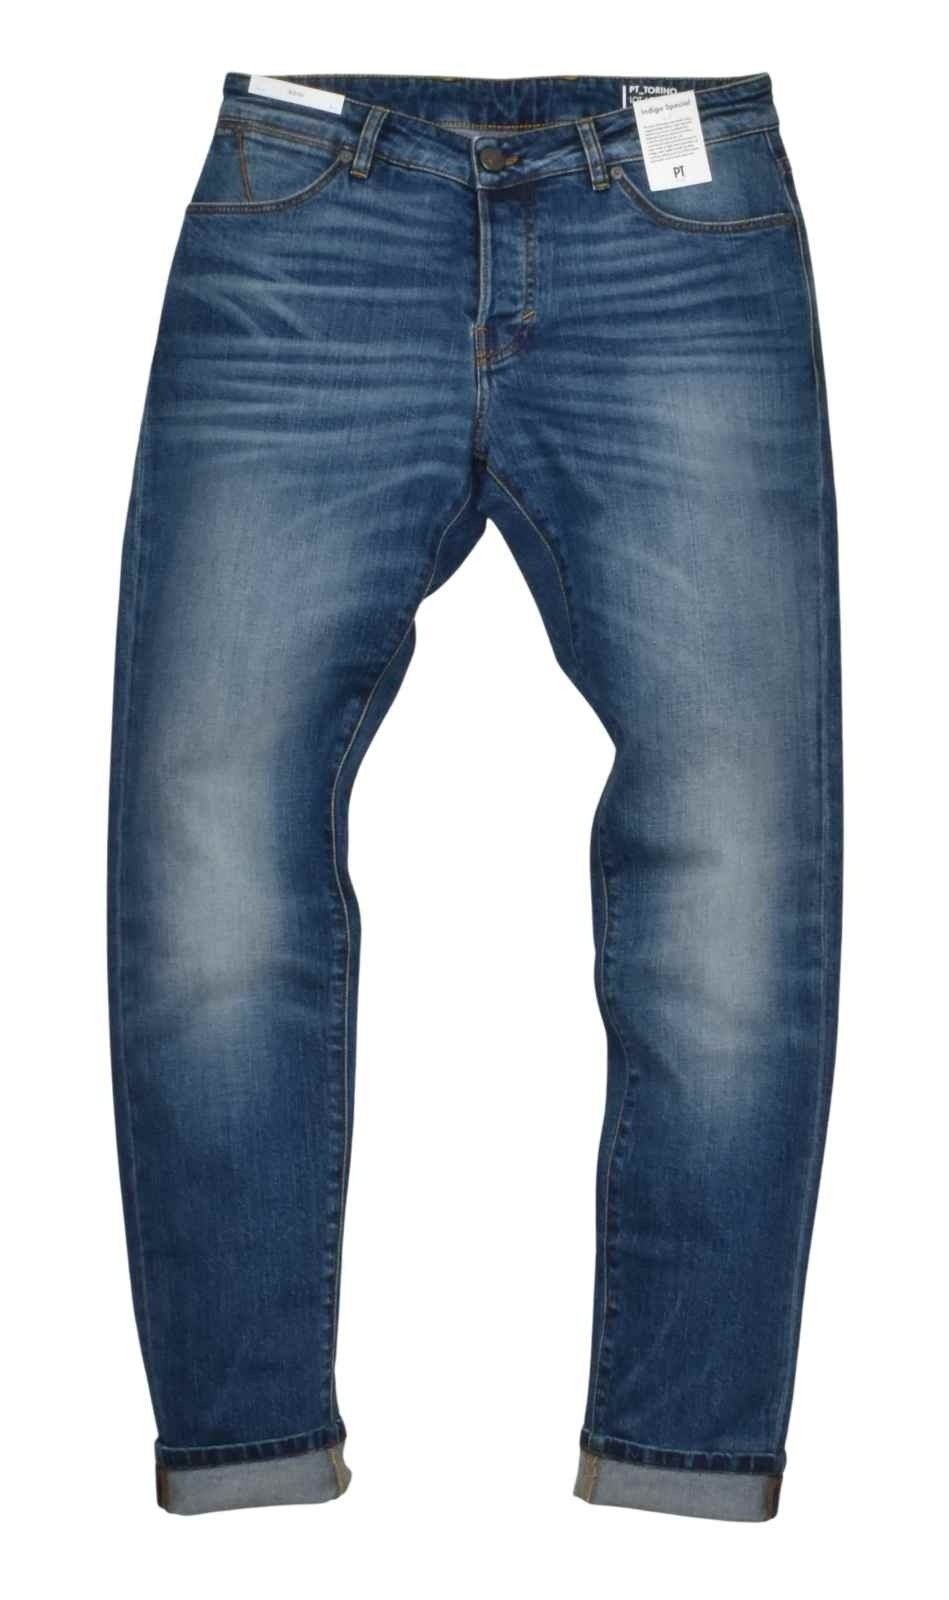 PT TORINO - Herren Hosen - Denim Indigo Soul - Washed Blue